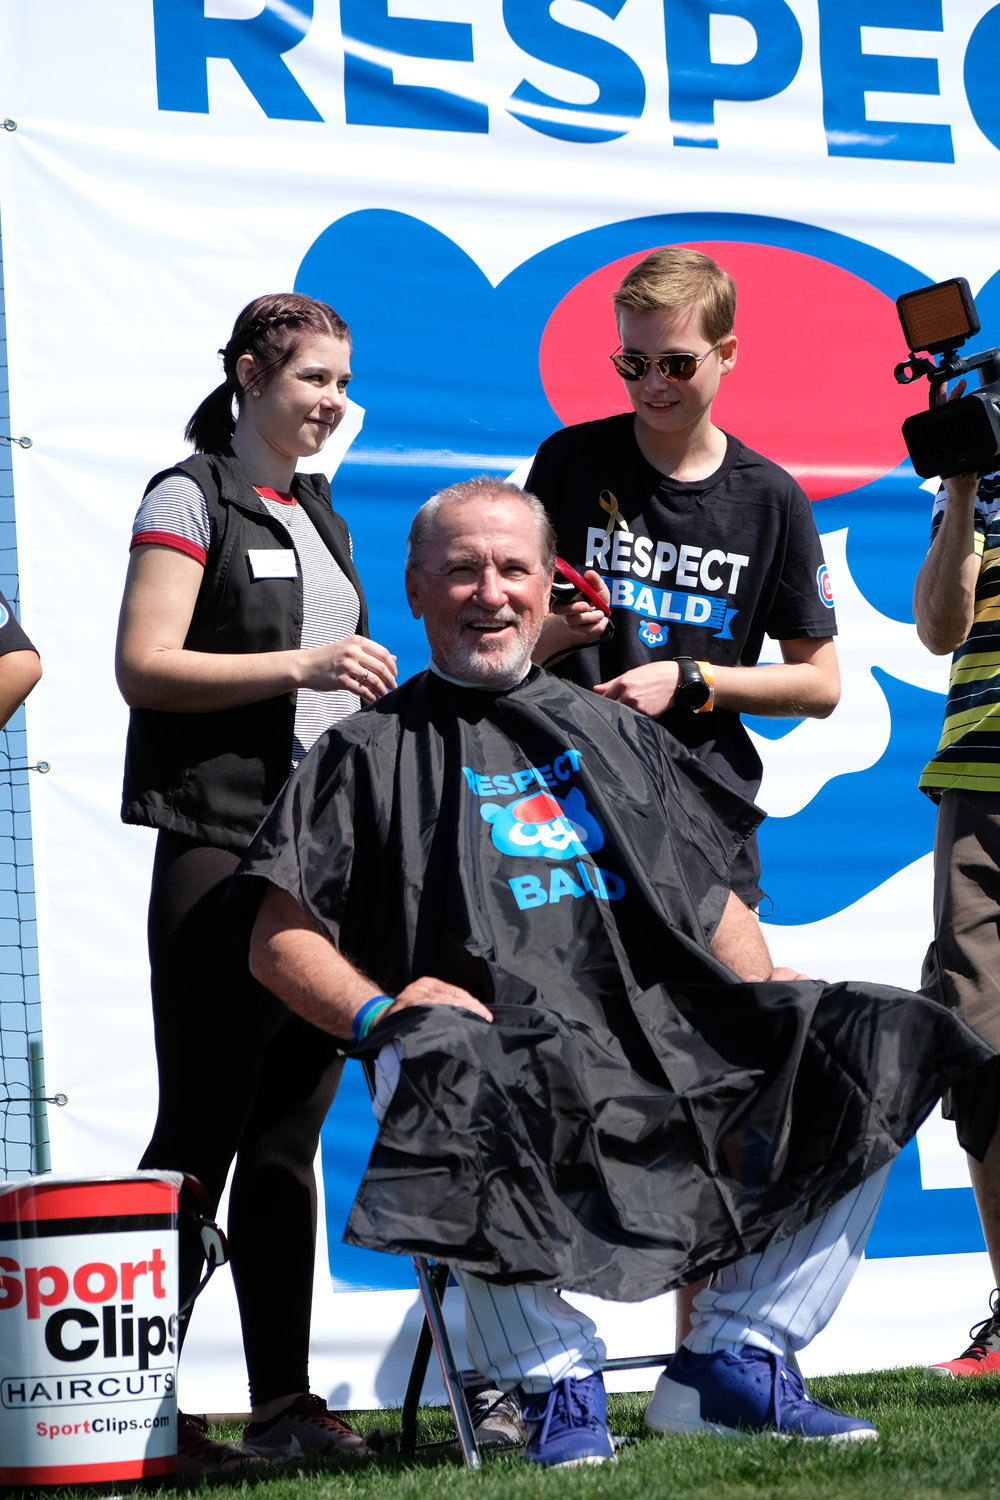 Chicago Cubs Respect Bald Event